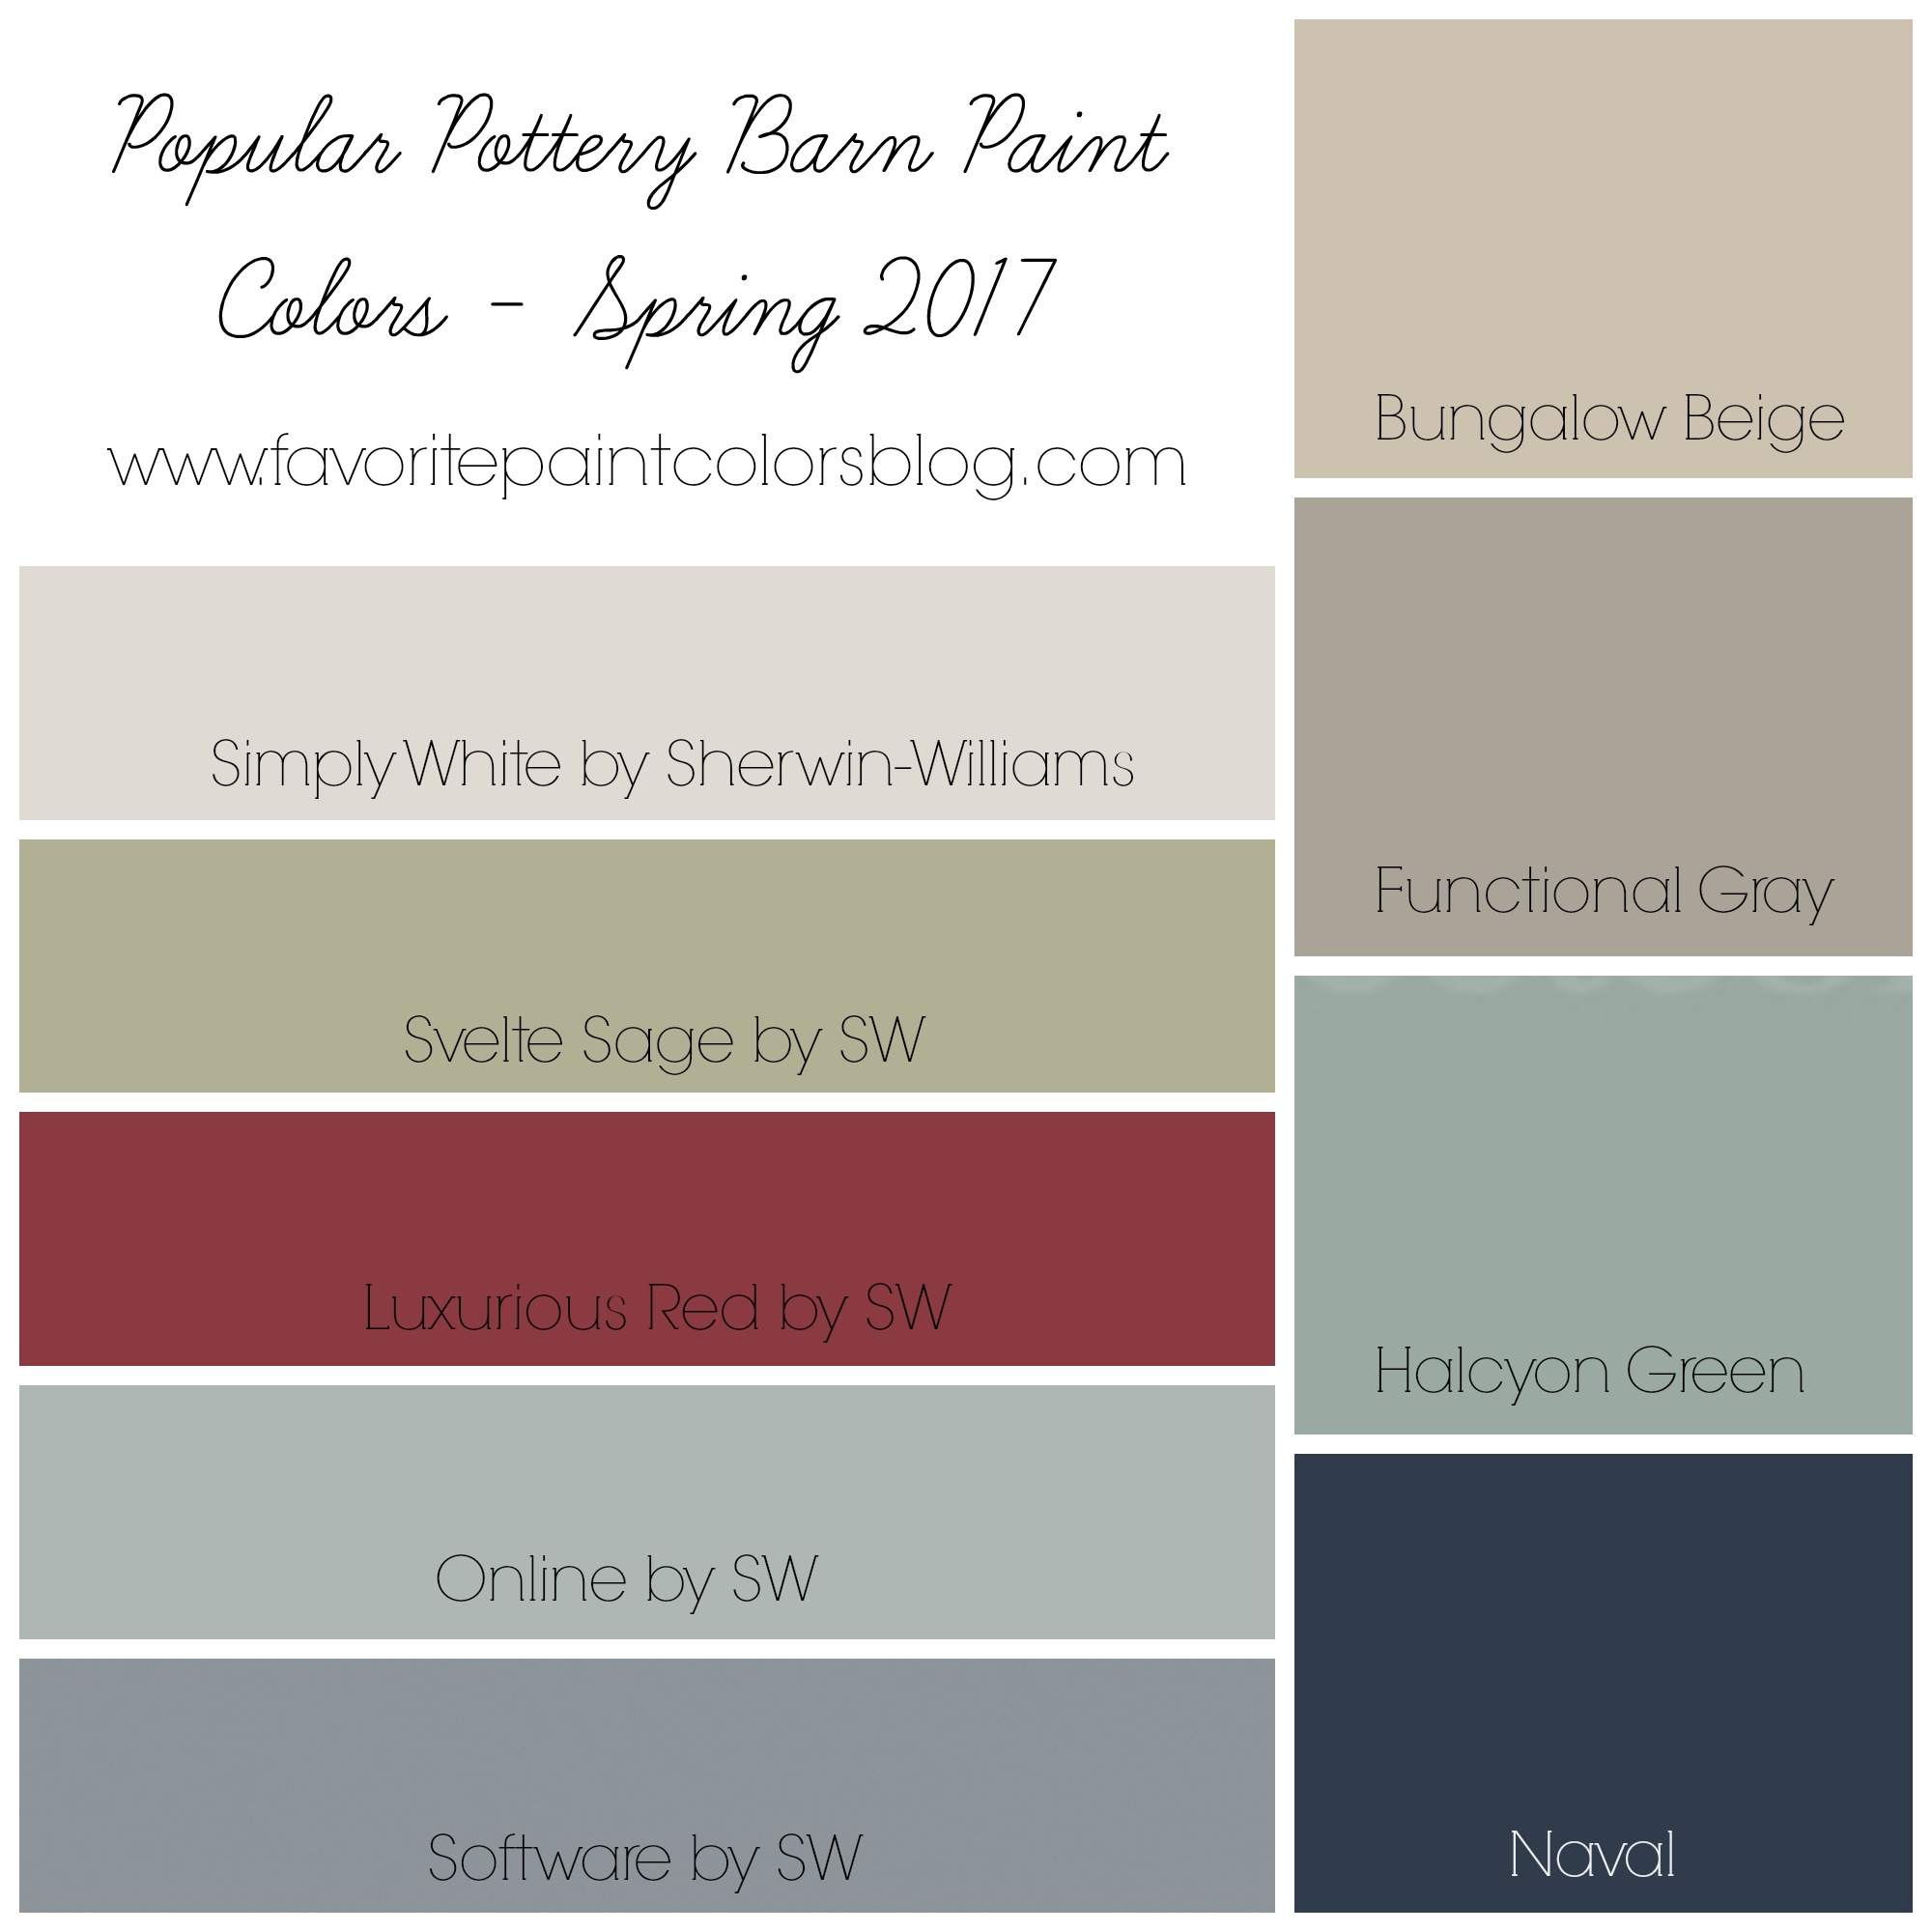 Most Popular Paint Colors Custom Popular Pottery Barn Paint Colors  Favorite Paint Colors Blog Design Decoration